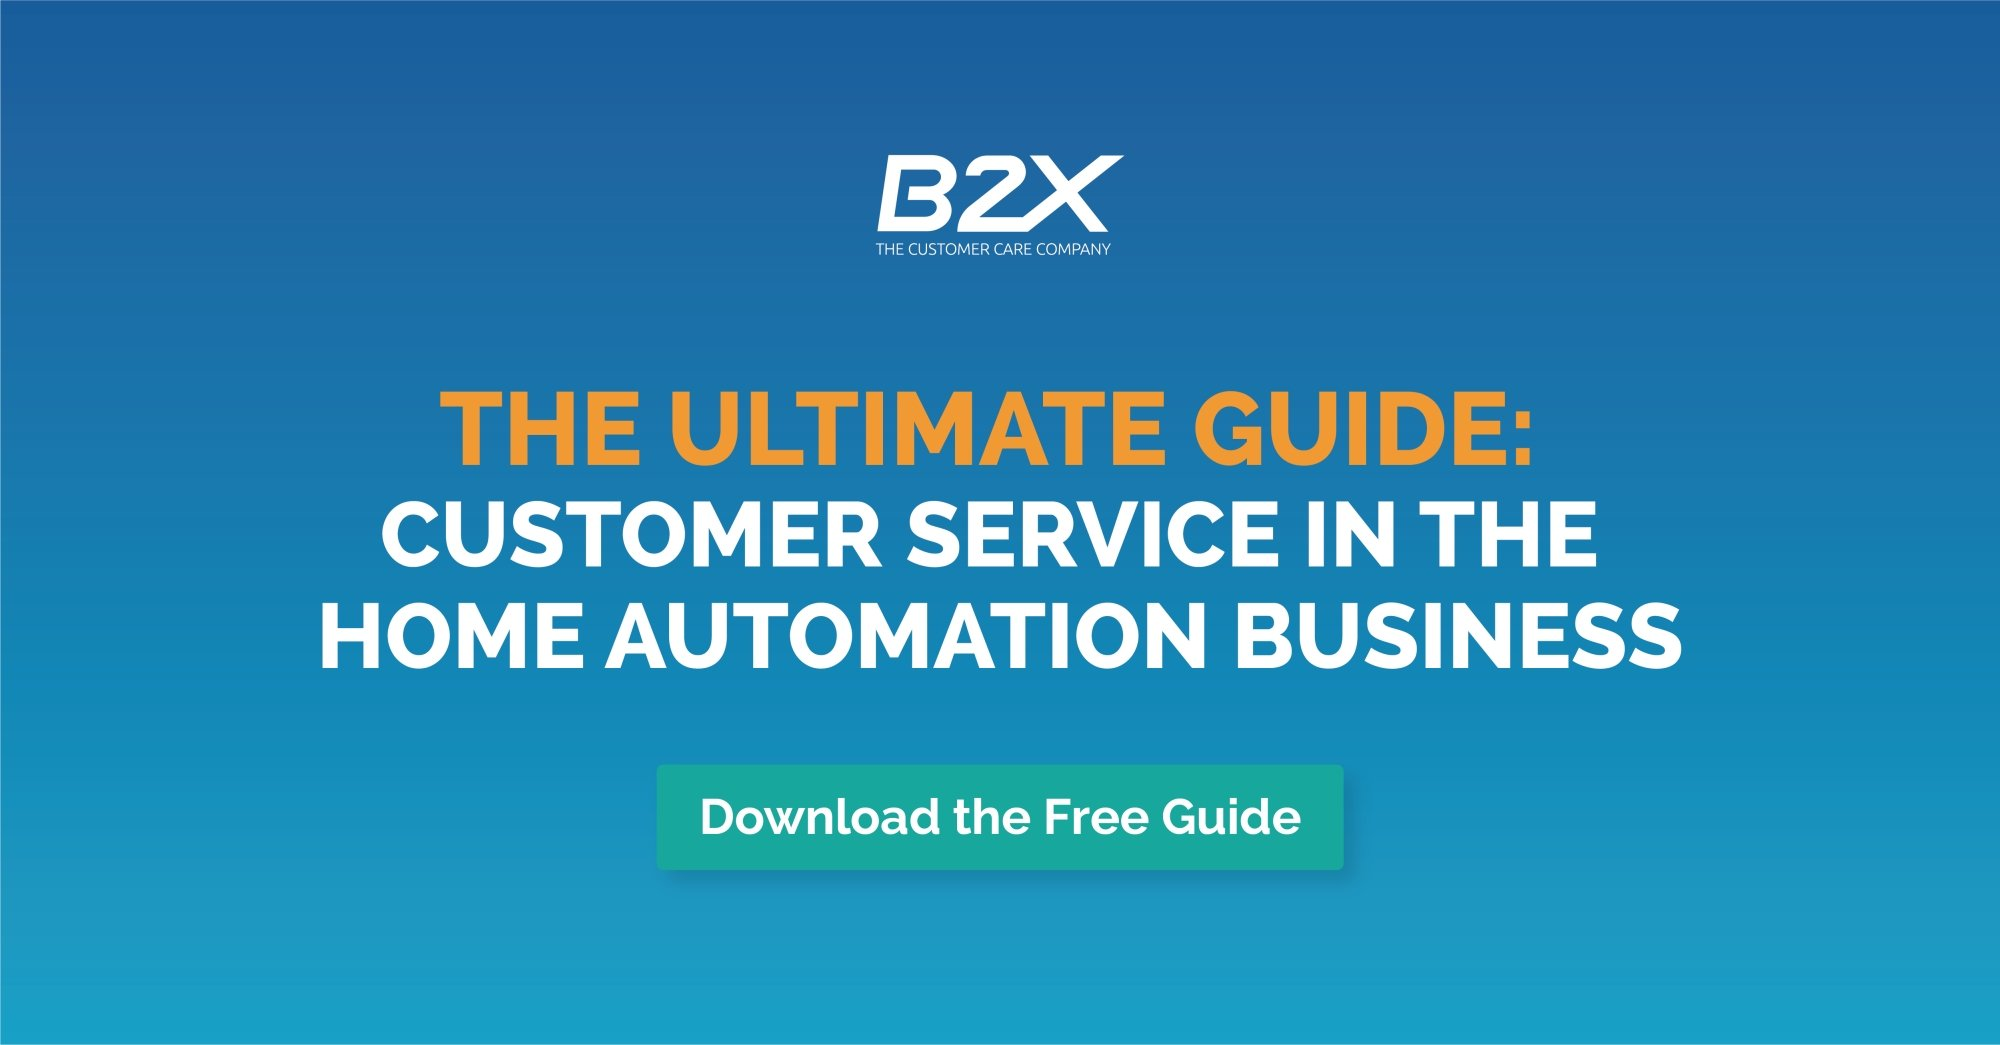 The new customer service guide for home automation and smart home brands